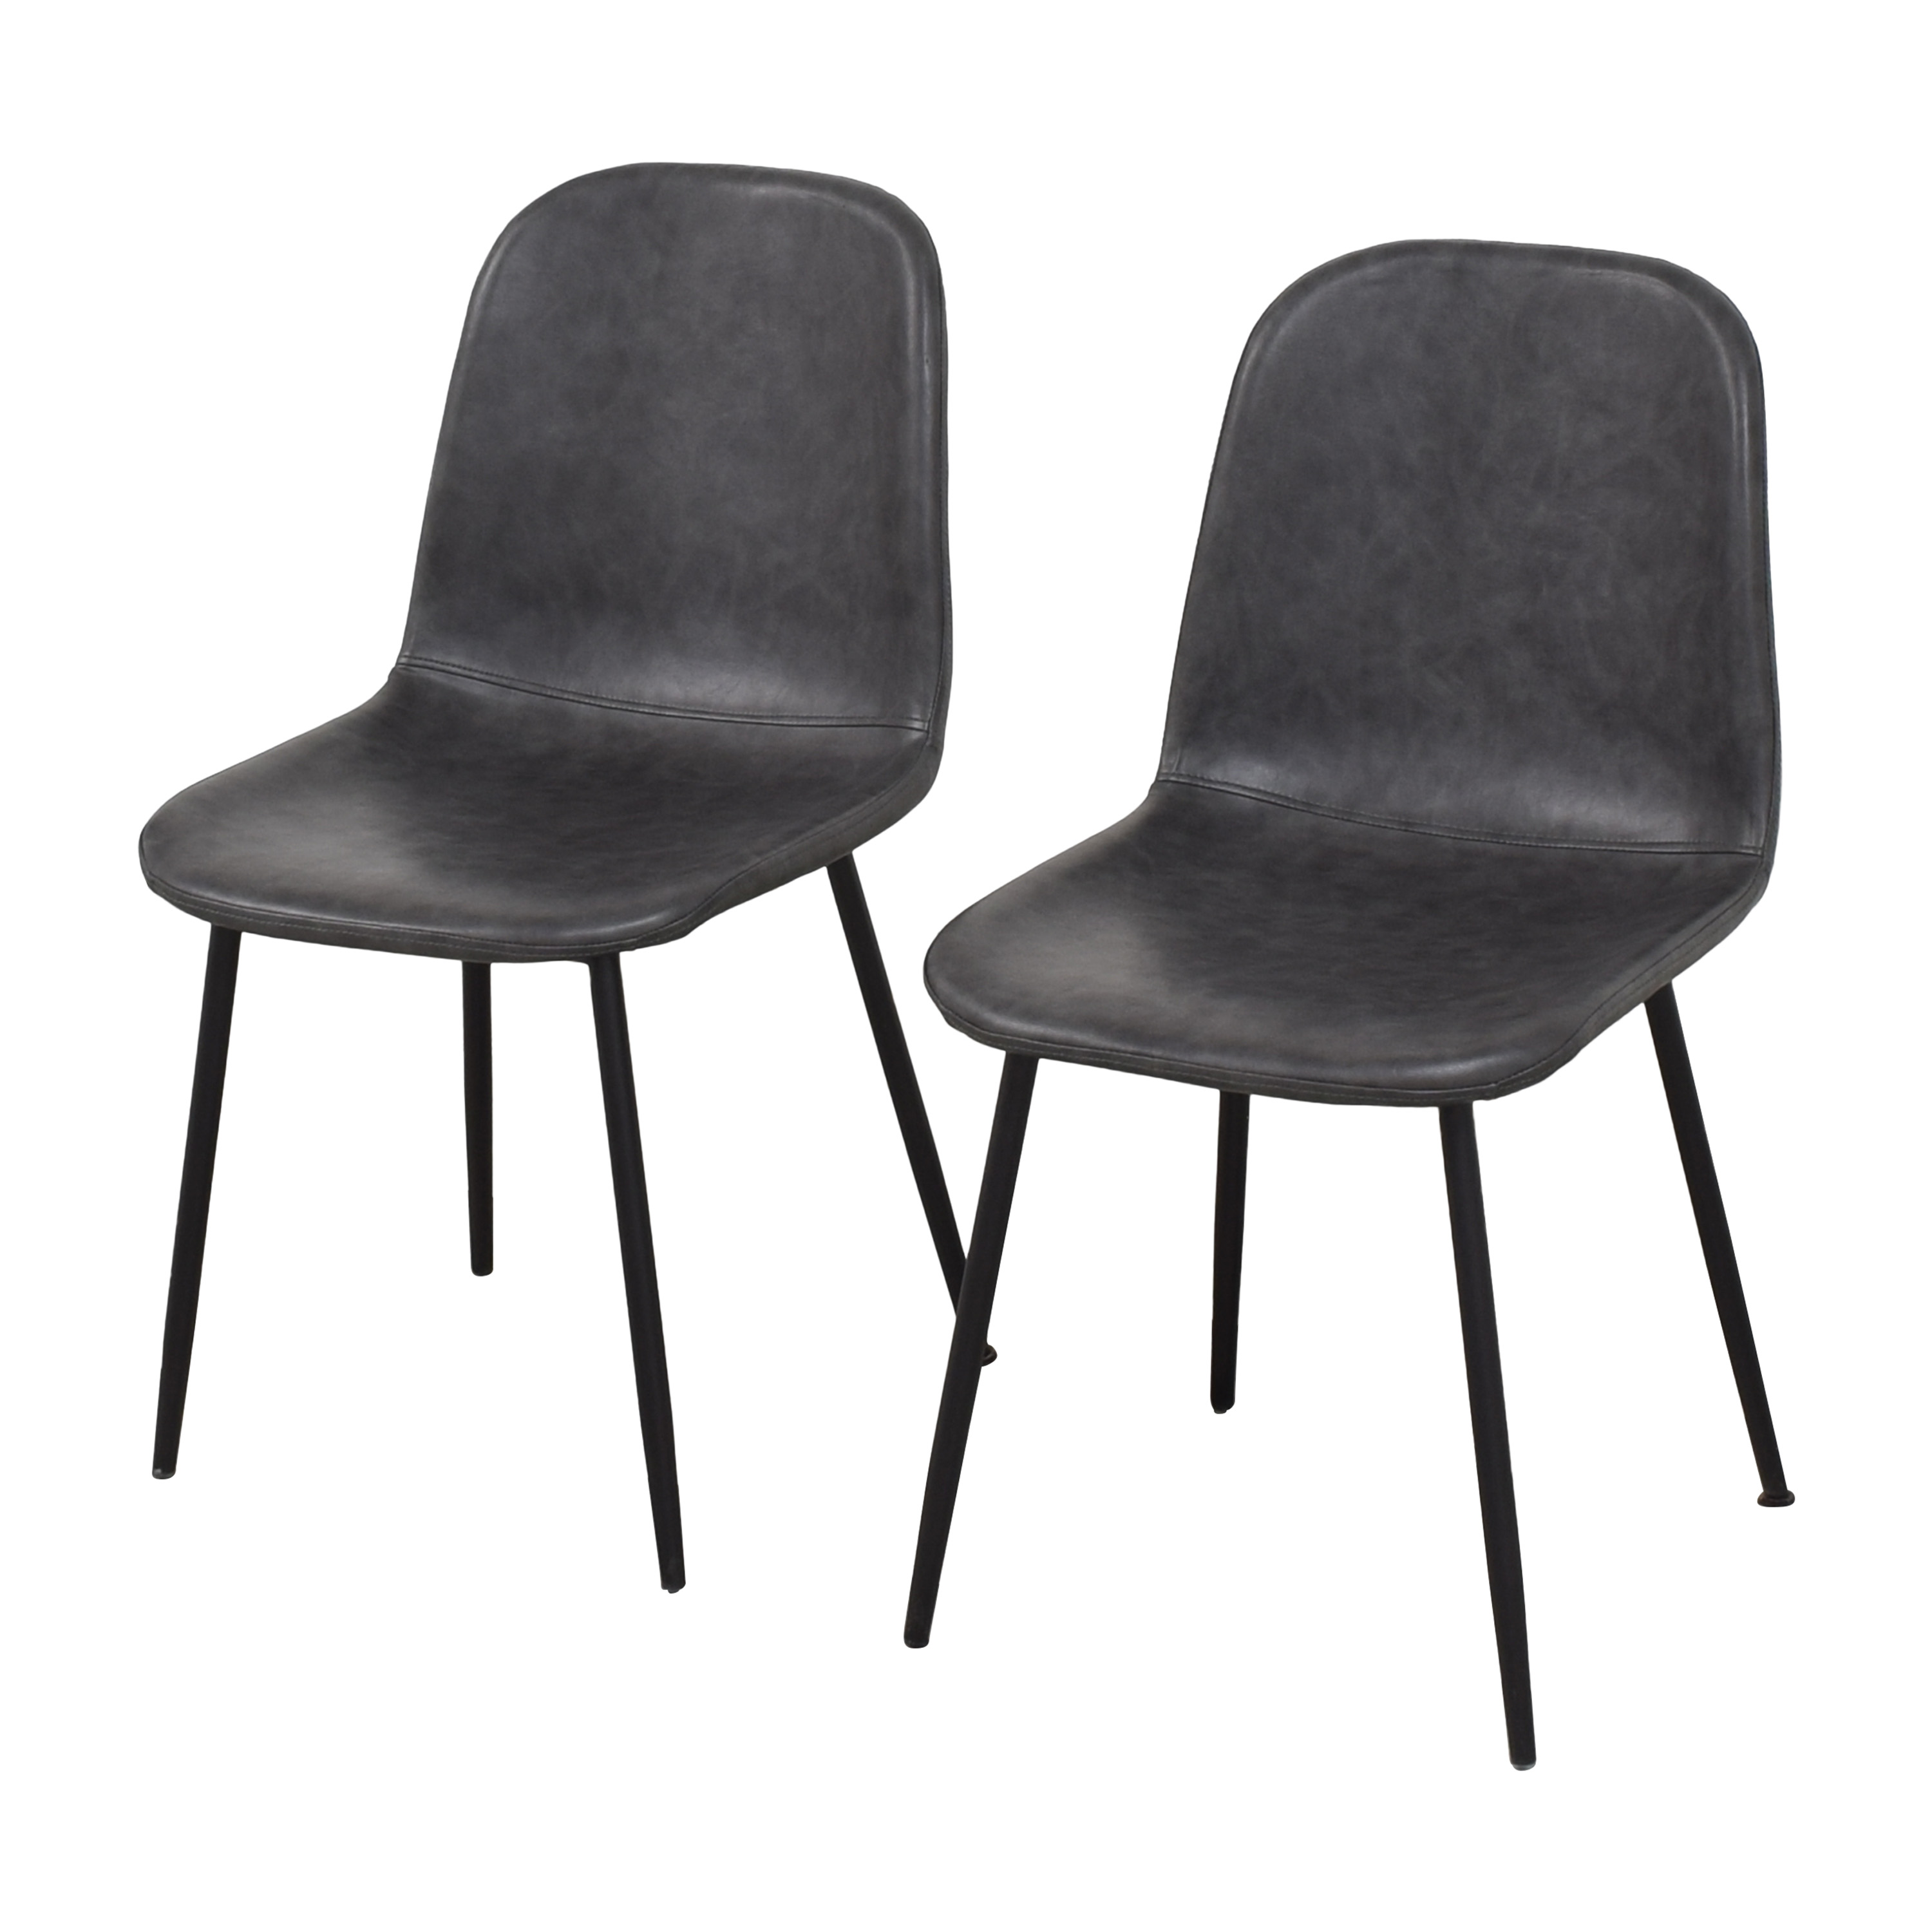 shop  Mid-Century Modern Style Dining Chairs online